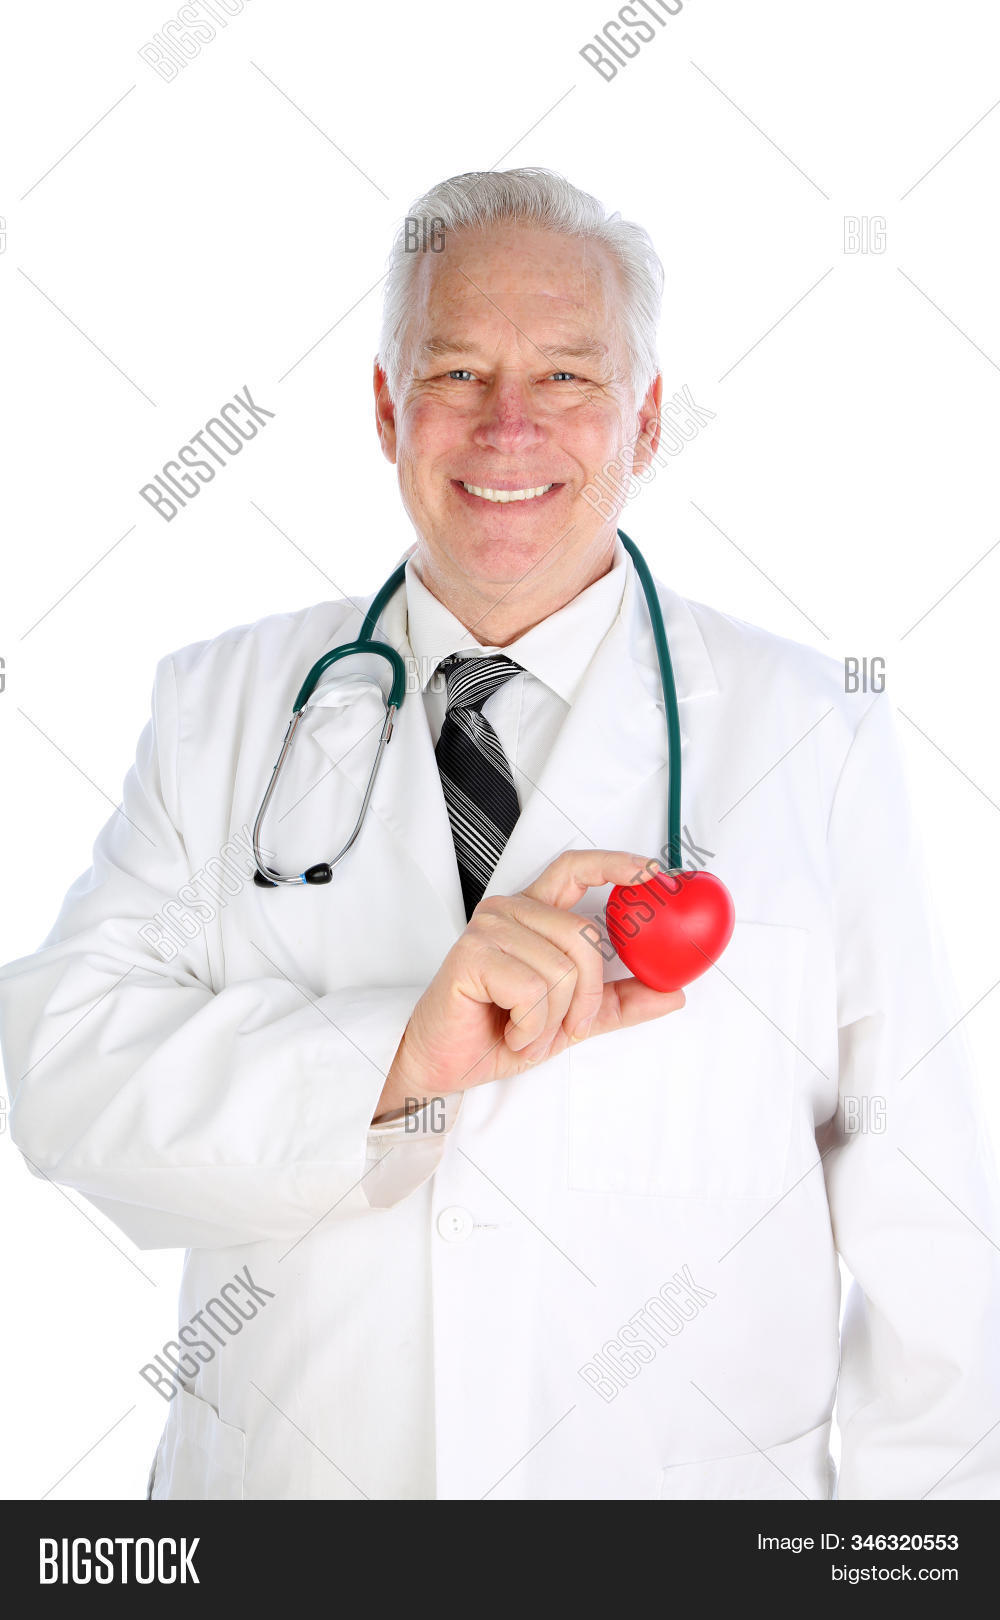 Doctor Lab Coat Image Photo Free Trial Bigstock